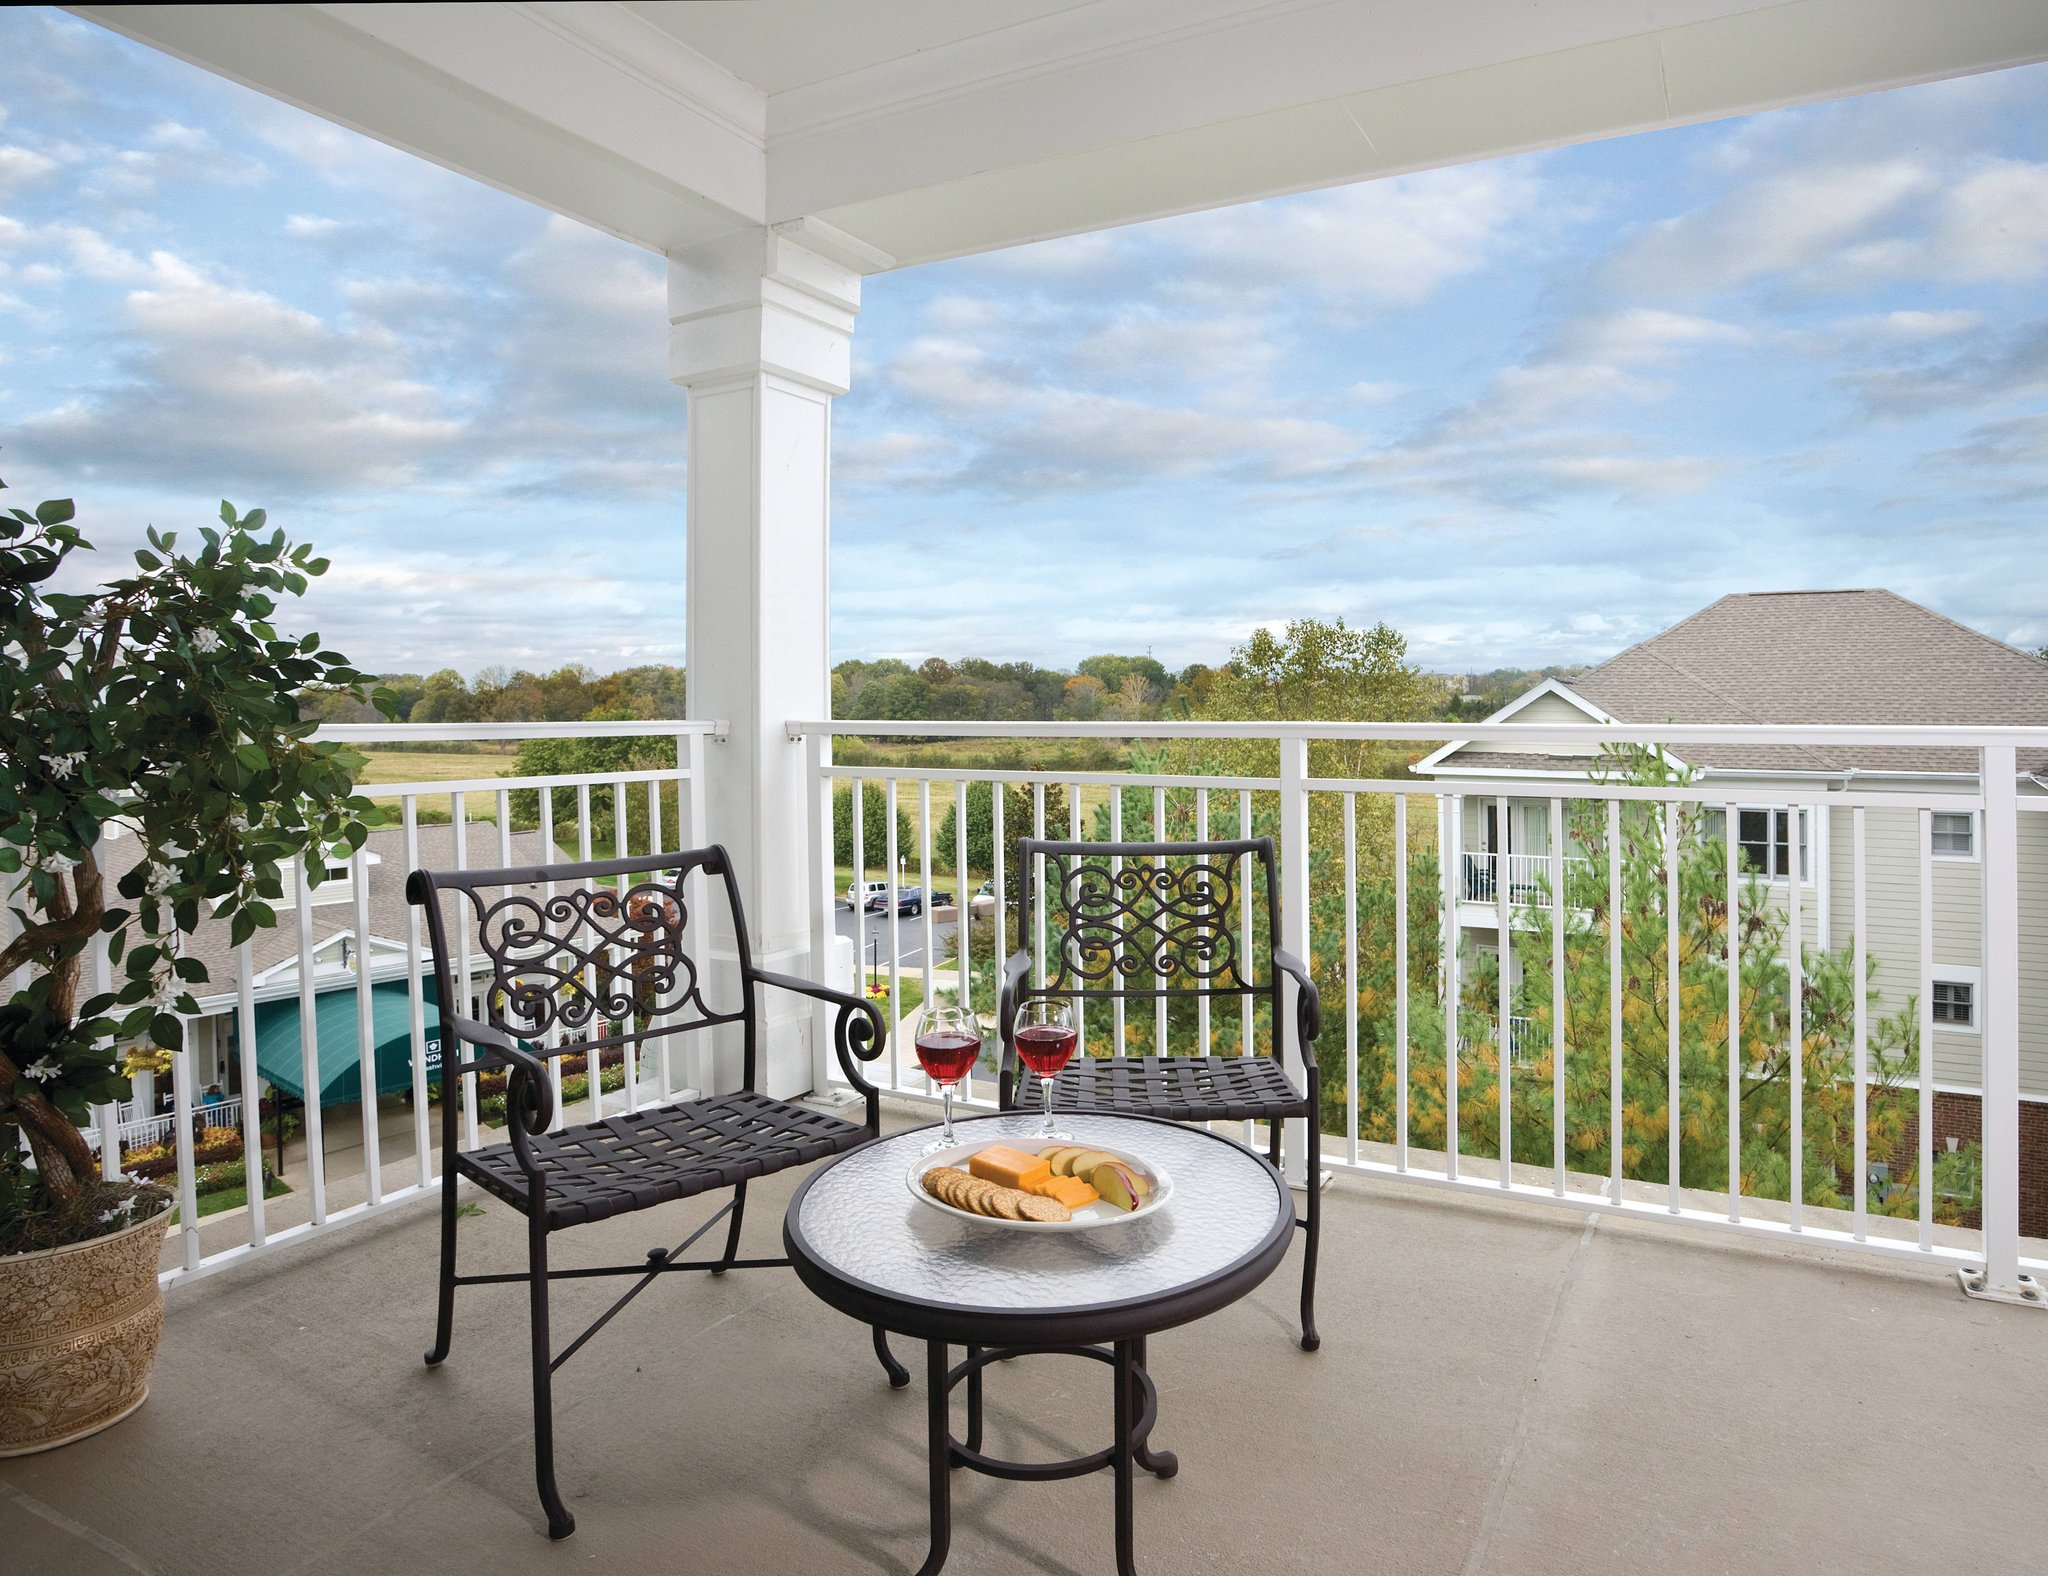 Two Bedroom Condo By Wyndham Nashville In Nashville Tennessee At